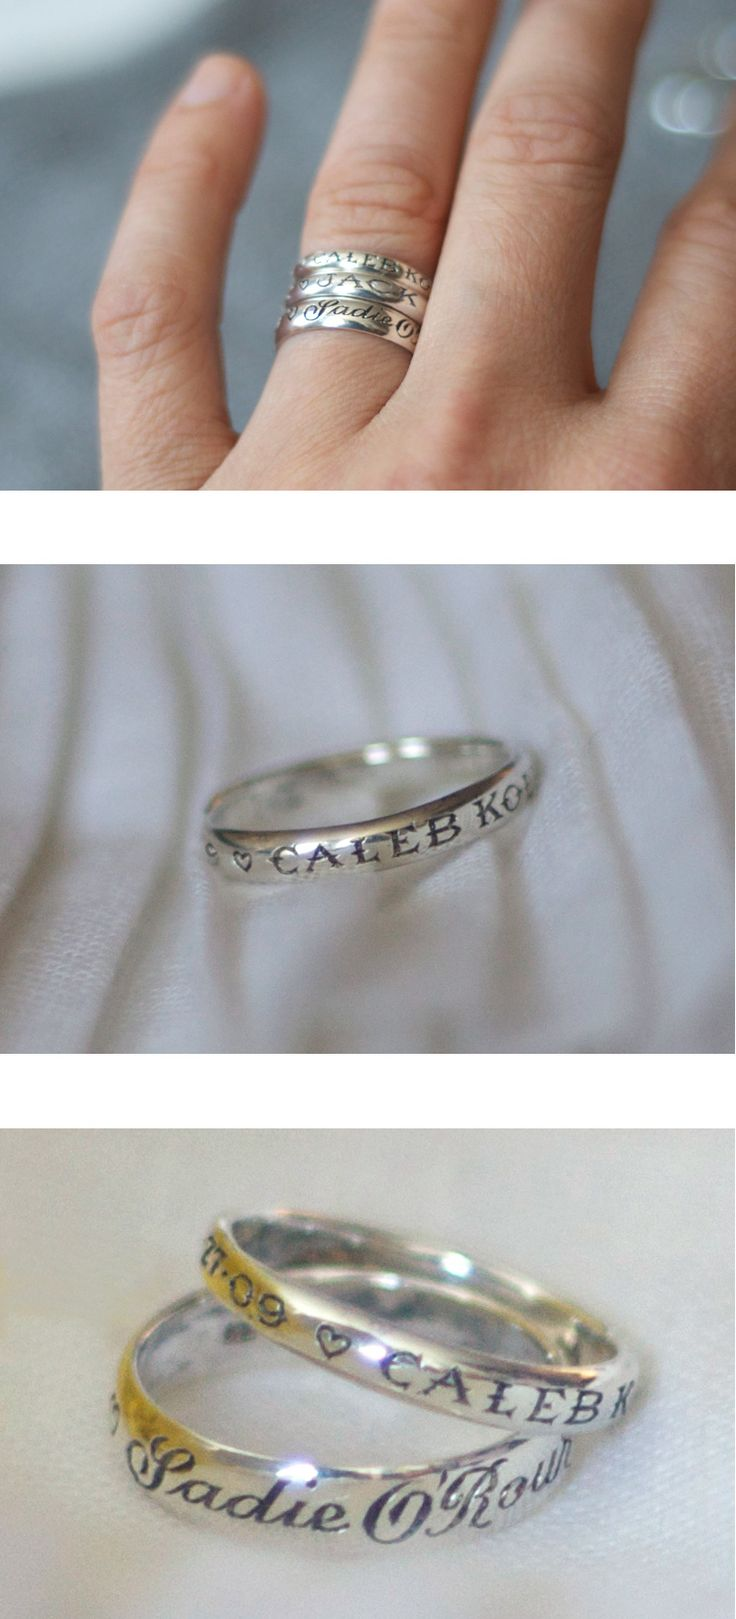 Child's name and date of birth on the ring. These are def the prettiest ones I've seen. I need money